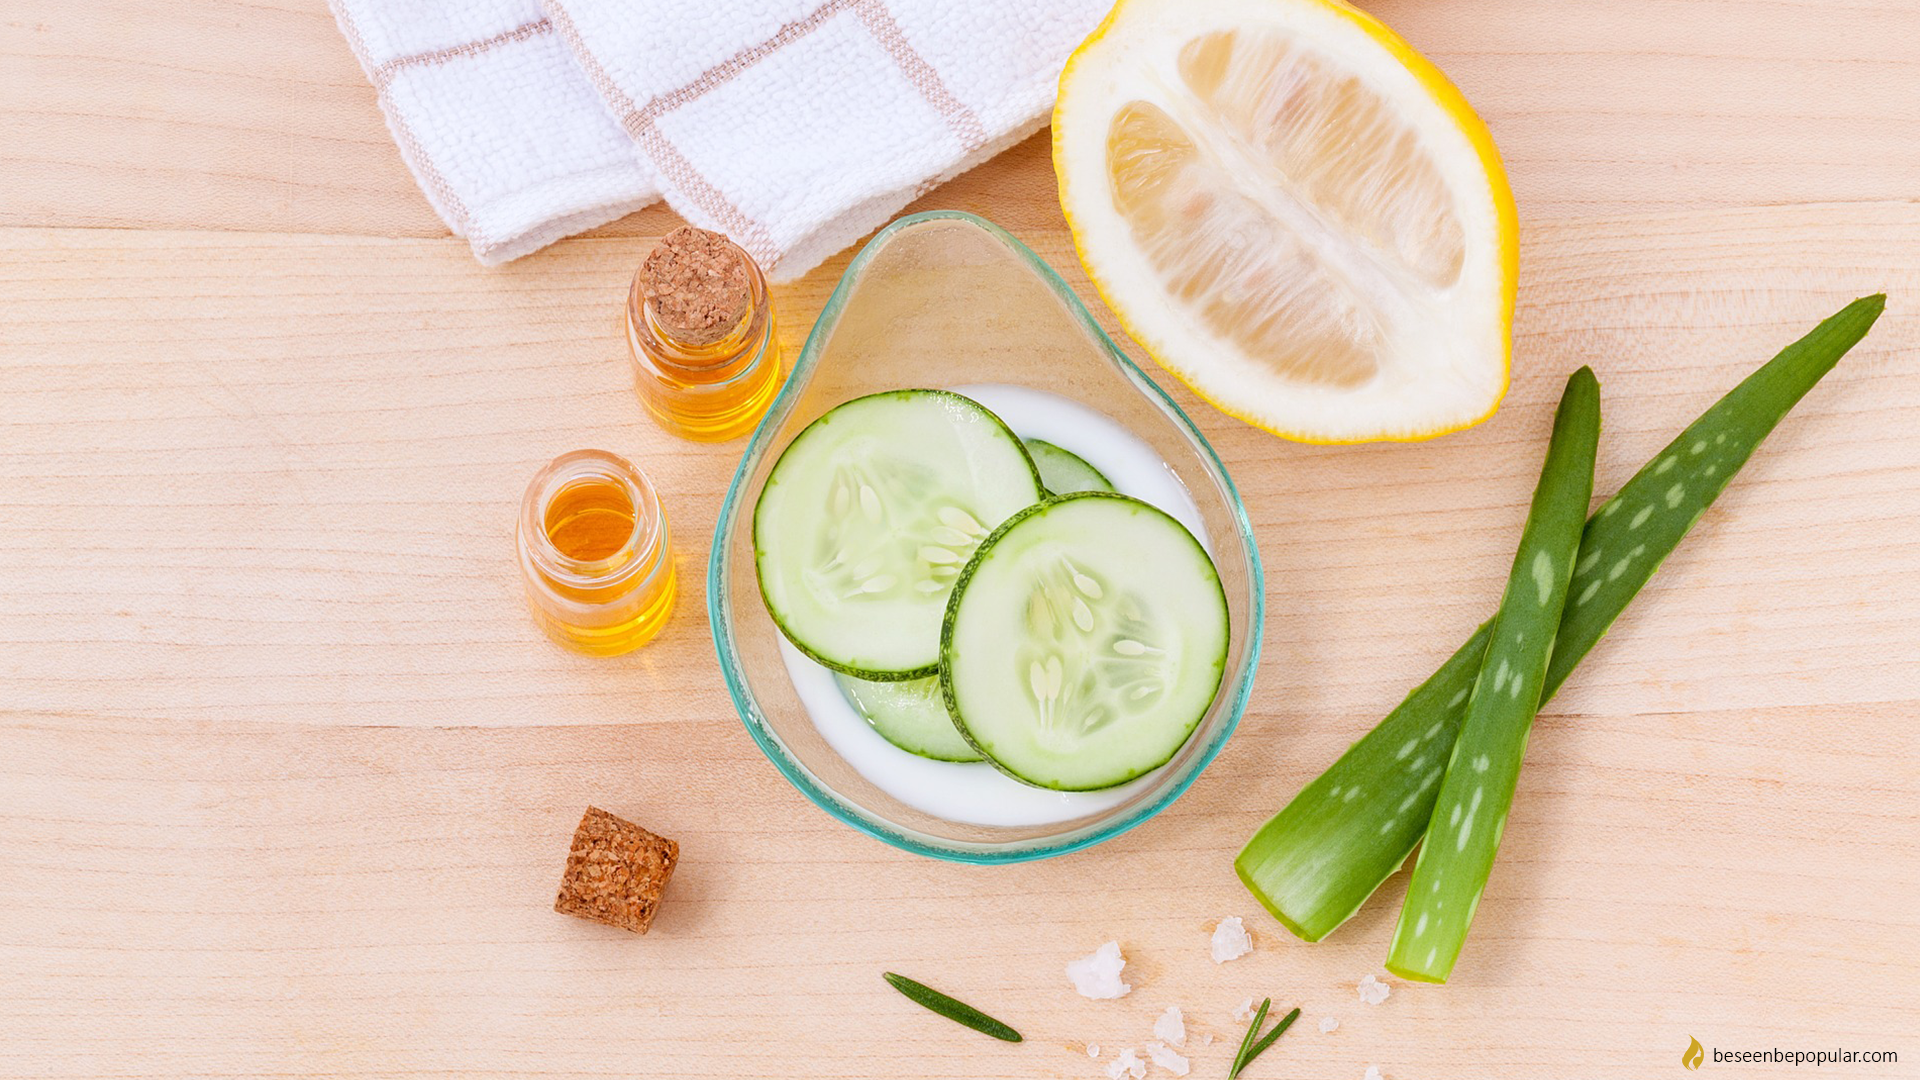 ingredients that help with skin tightening